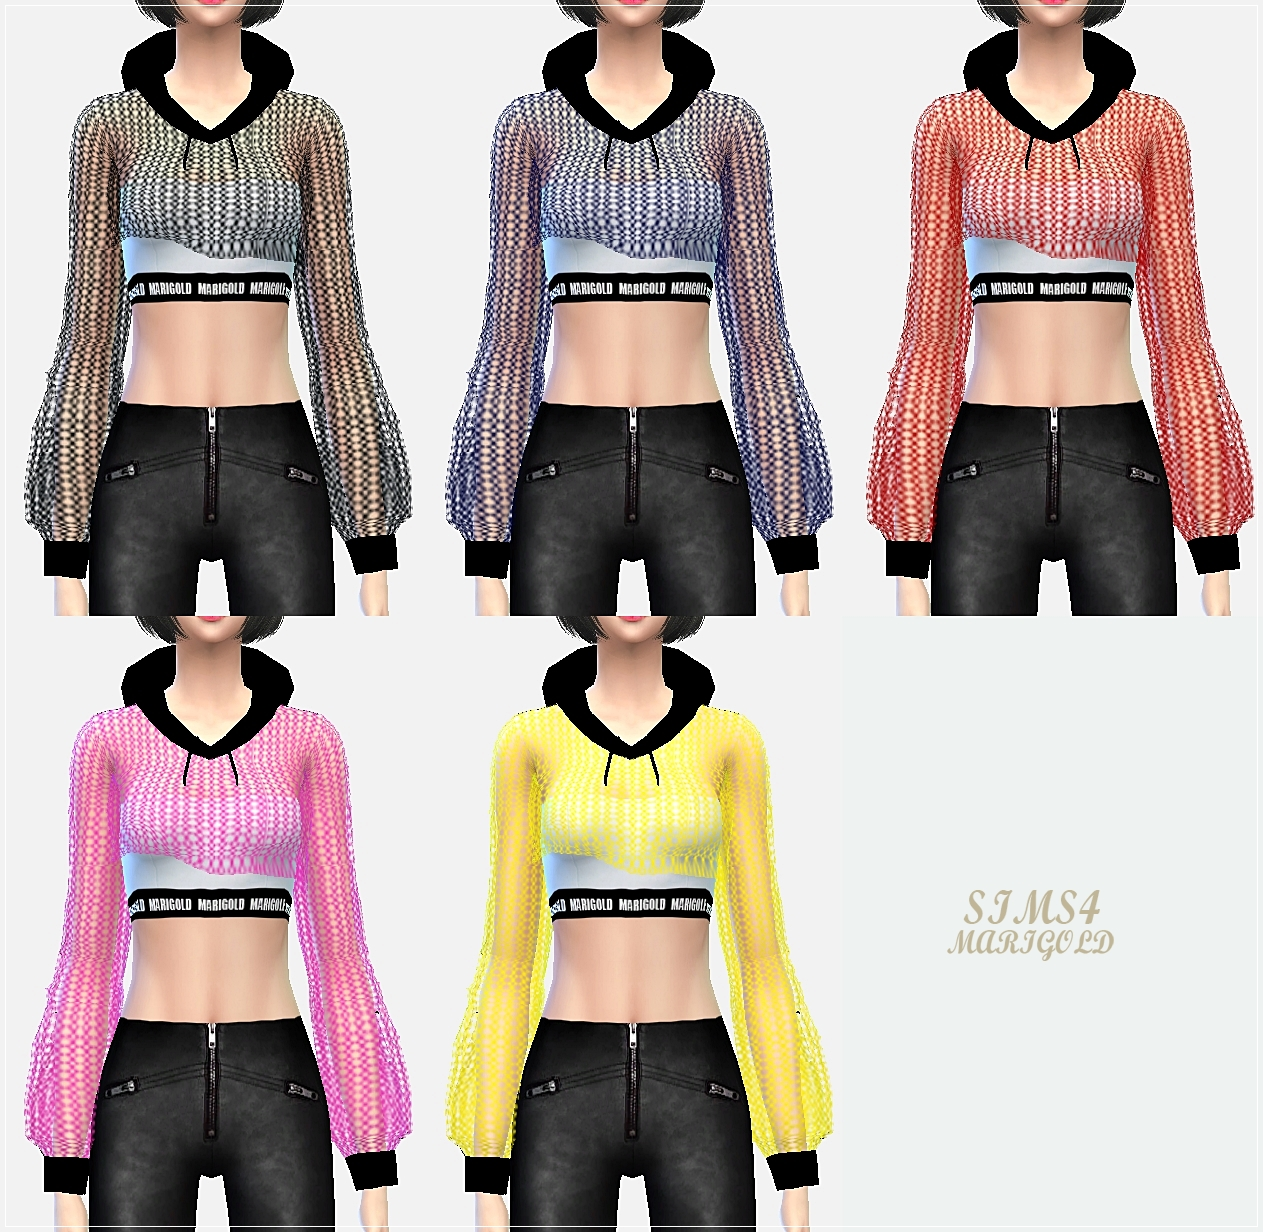 Mesh Cropped Hoodie for Females by Sims 4 Marigold